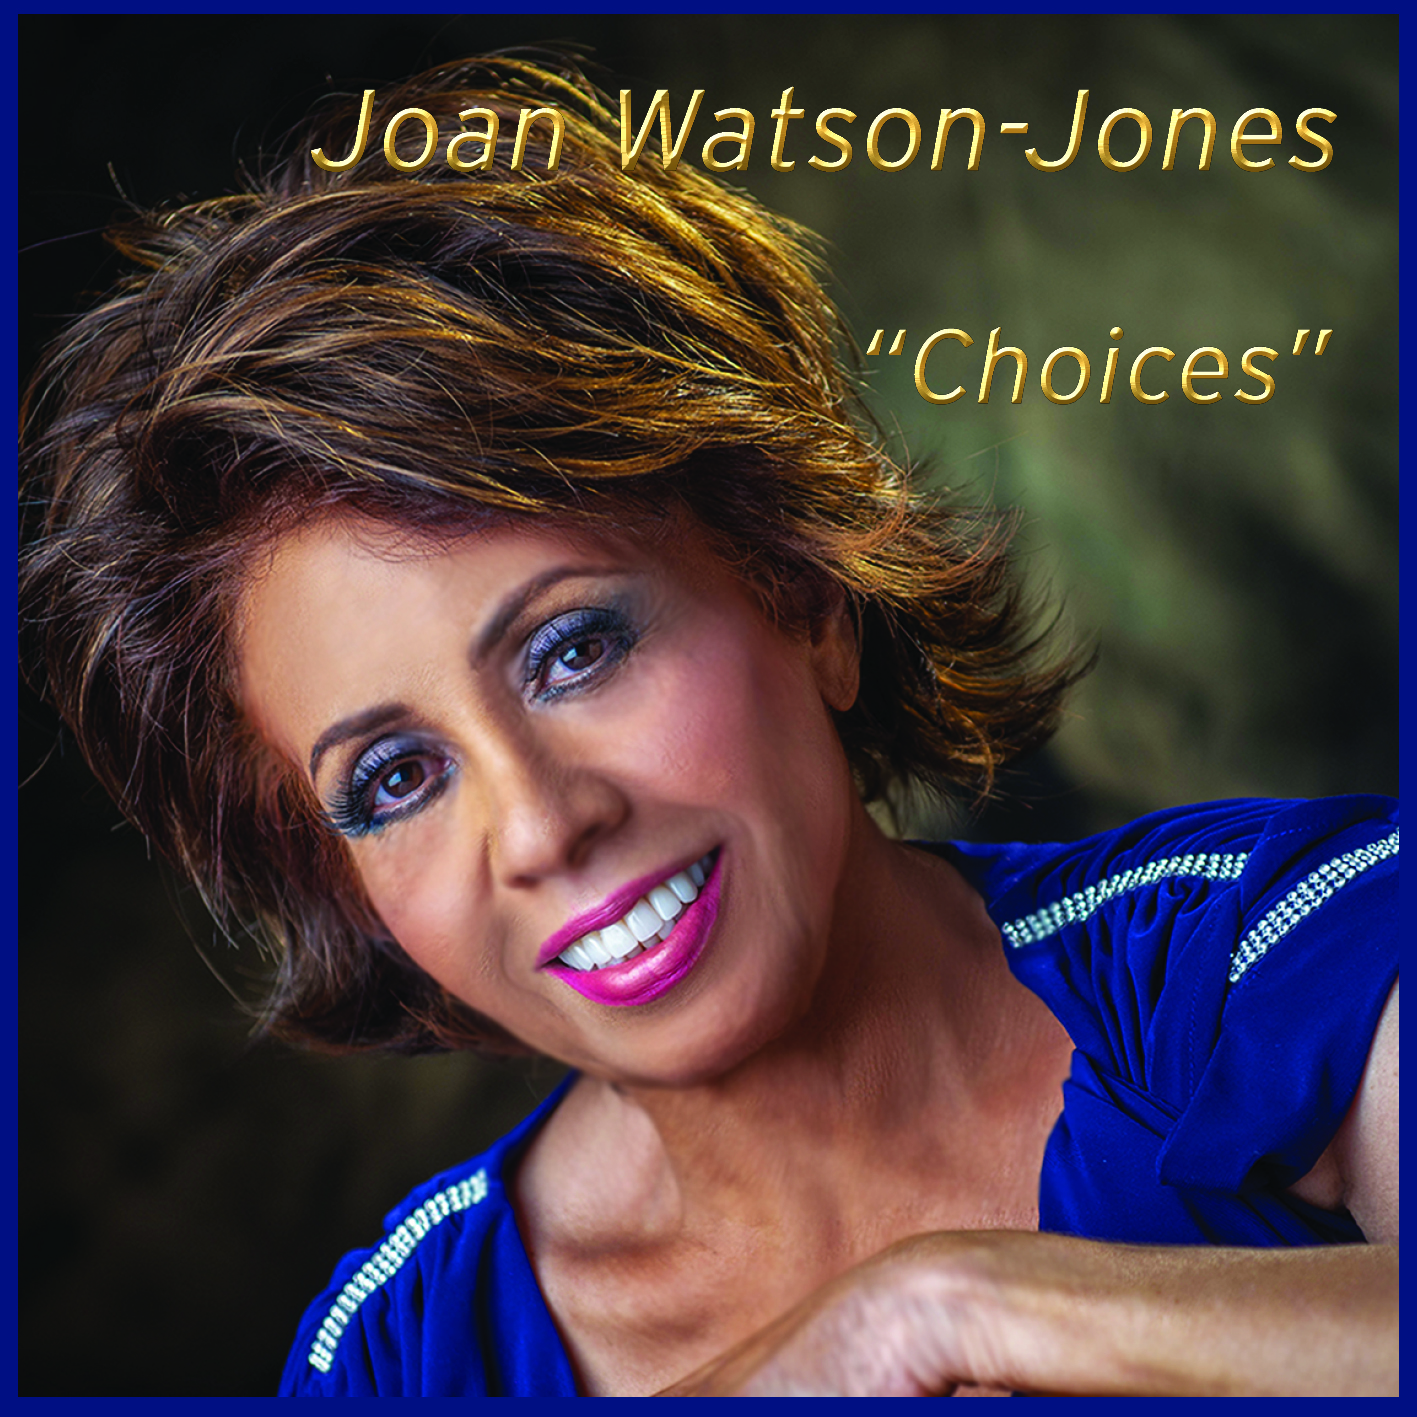 JOAN WATSON-JONES - Choices cover